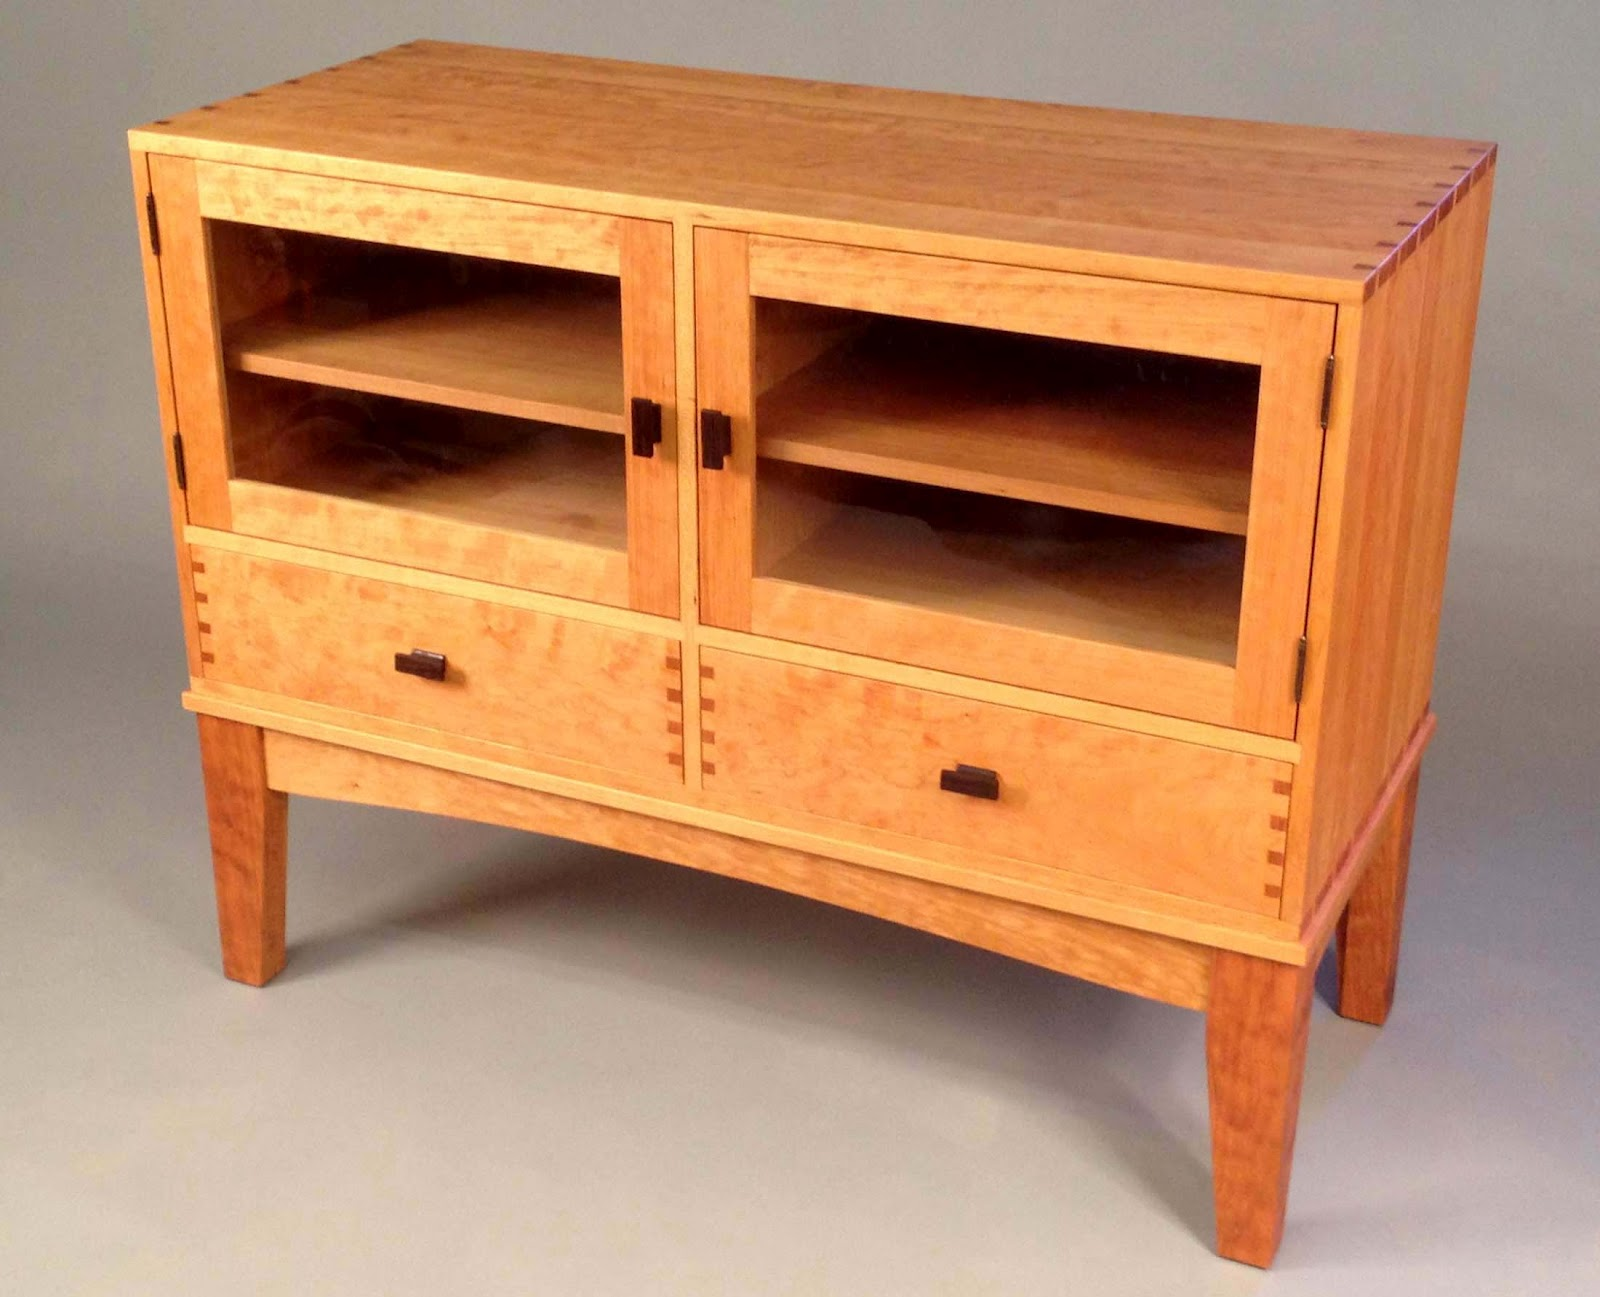 The Audio Visual Dovetailed Cabinet